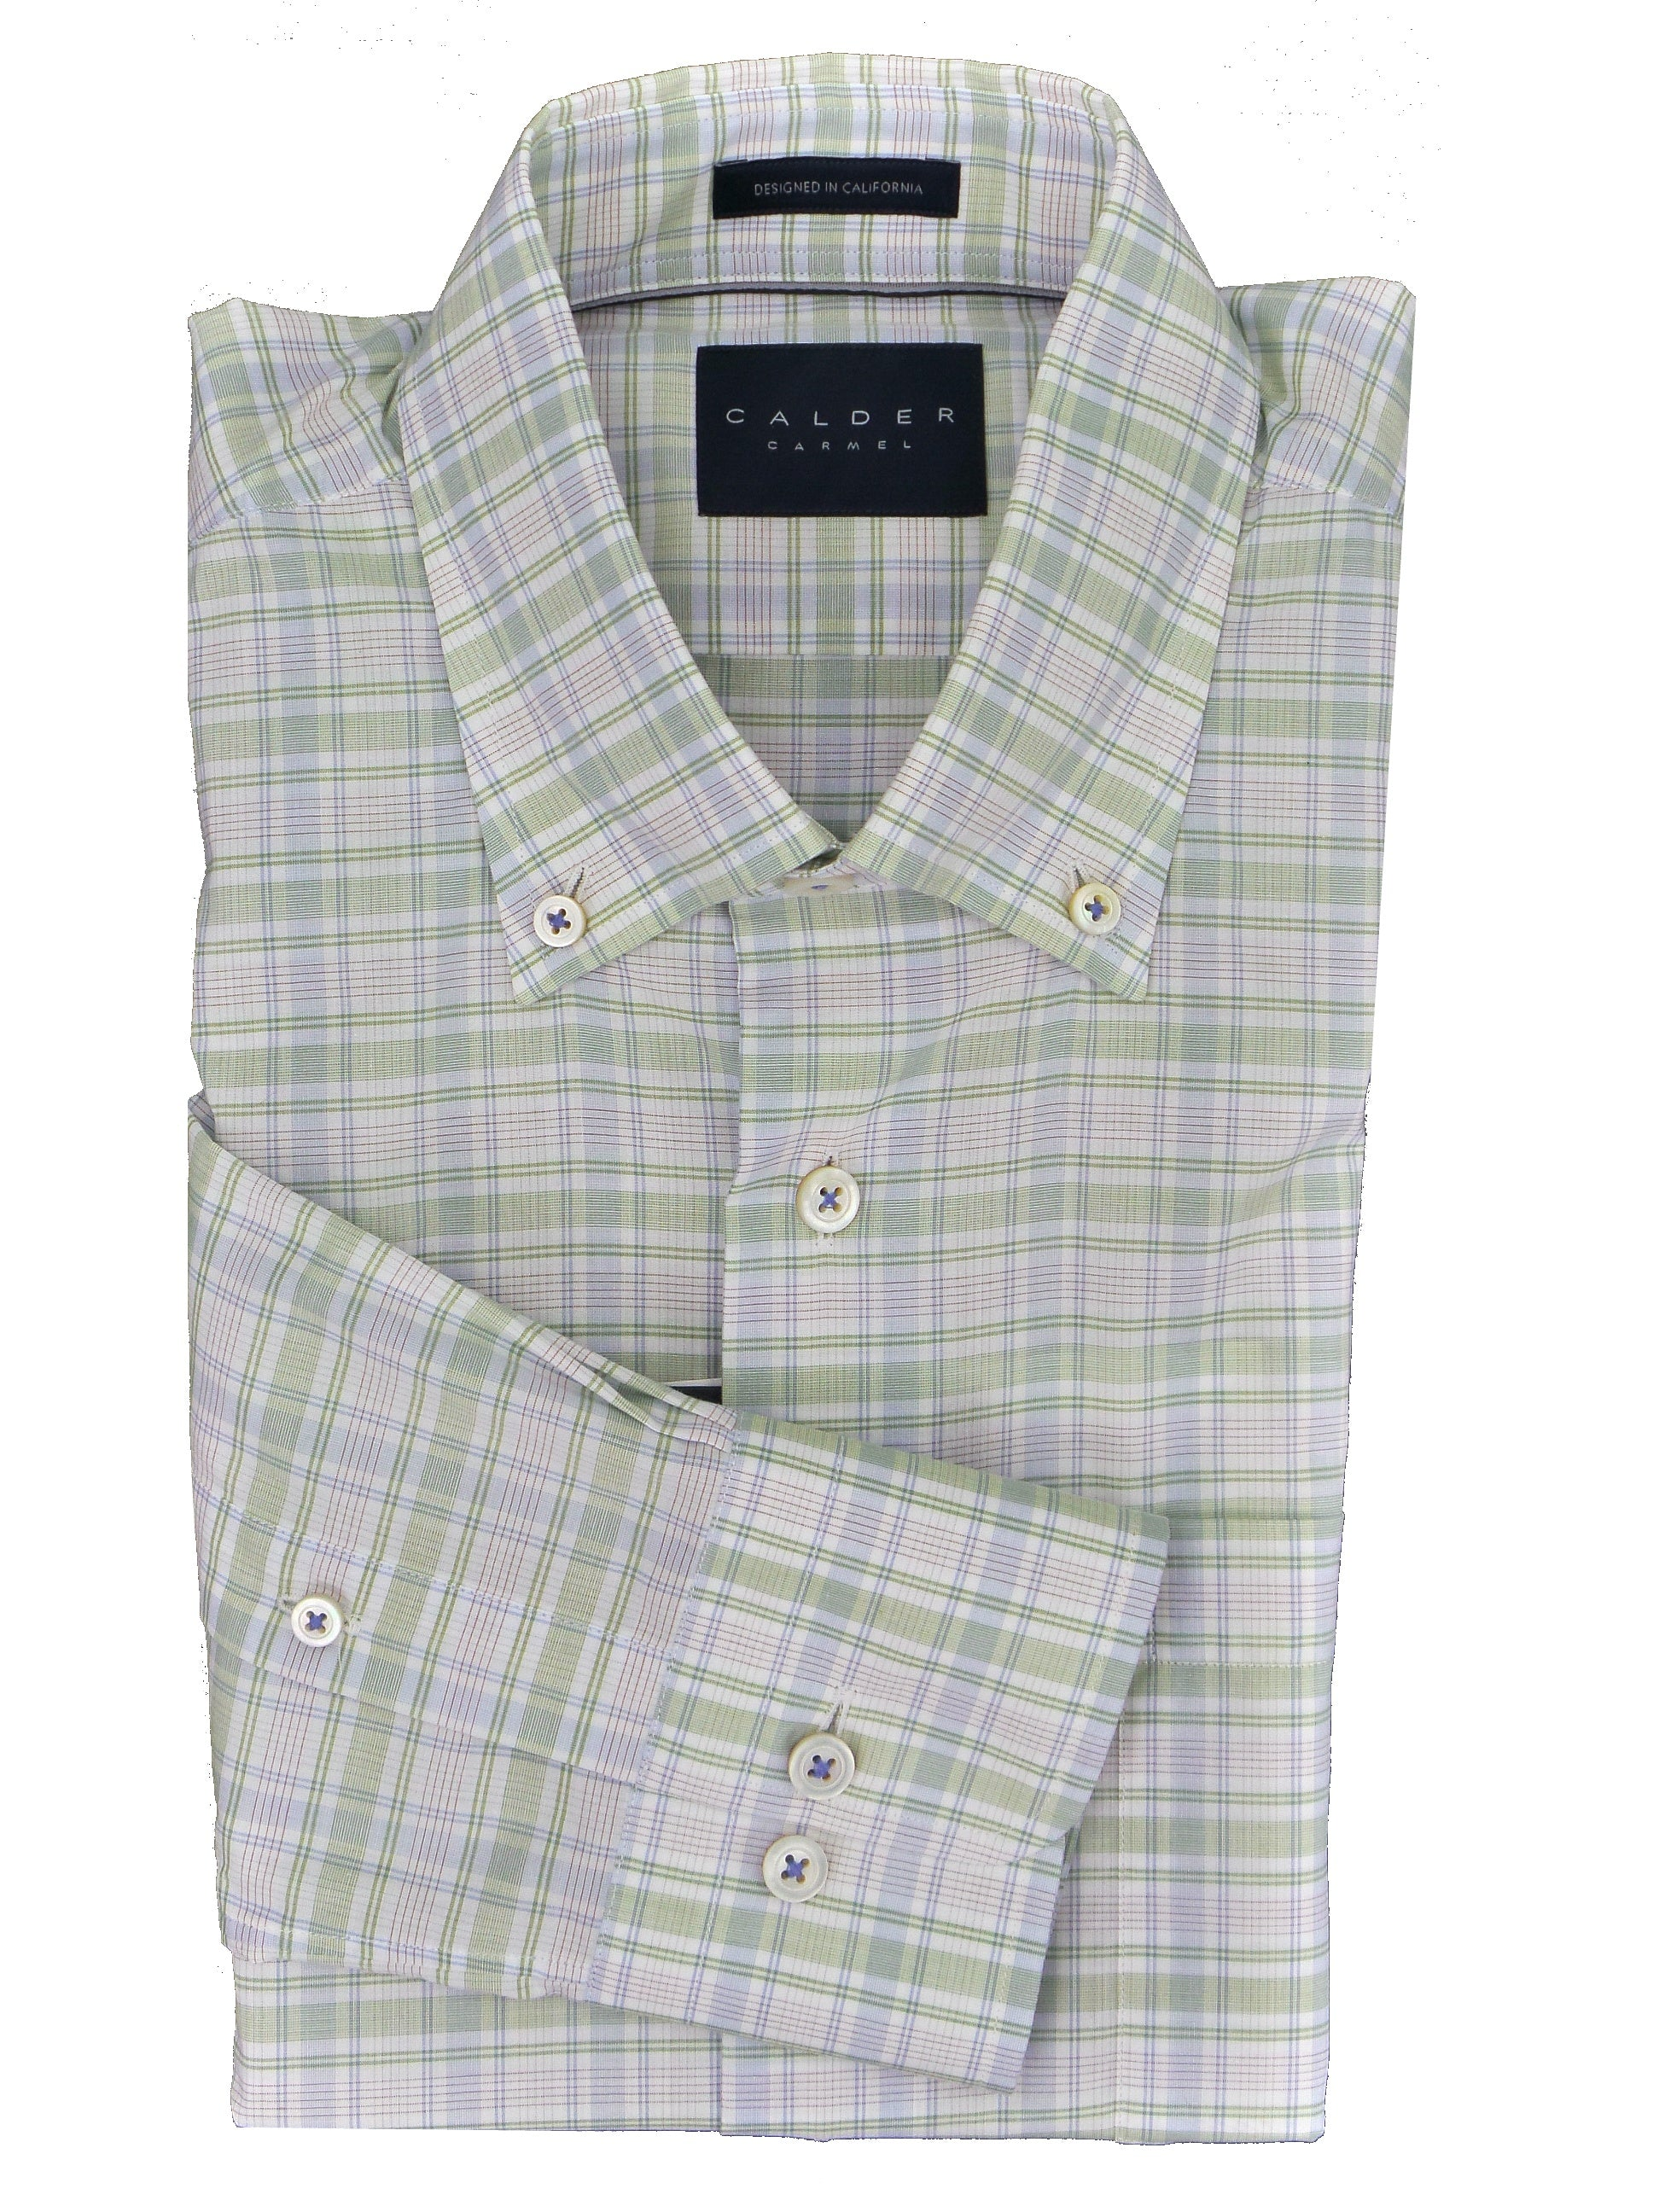 Calder Carmel Melange Poplin Check Soft Italian Milled Cotton Shirt